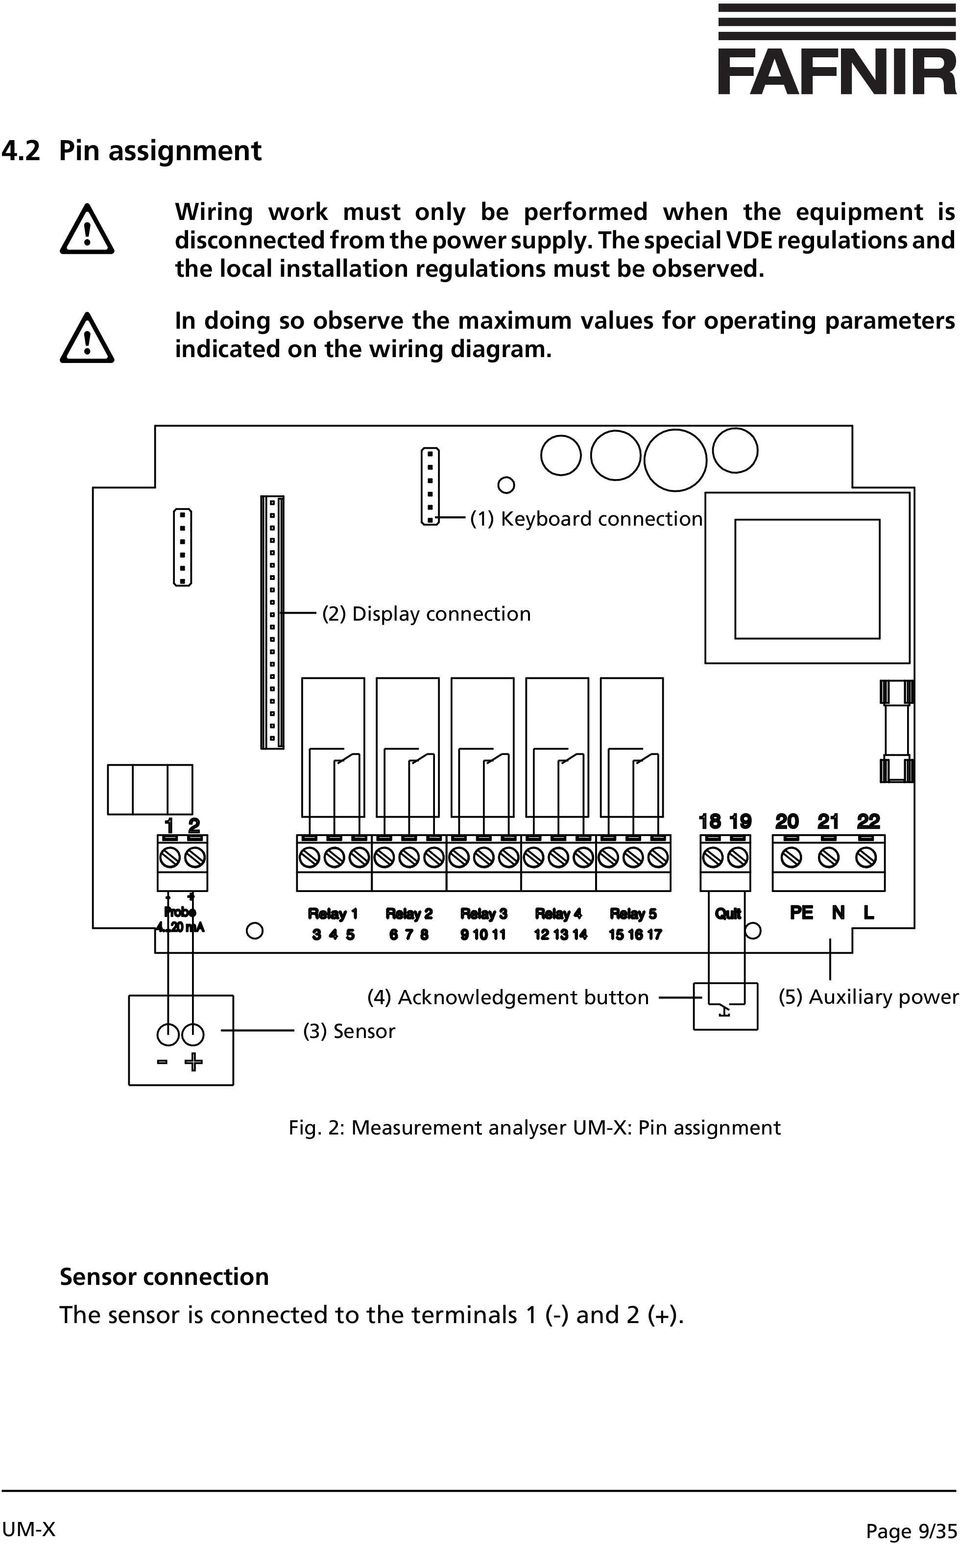 In doing so observe the maximum values for operating parameters indicated on the wiring diagram.